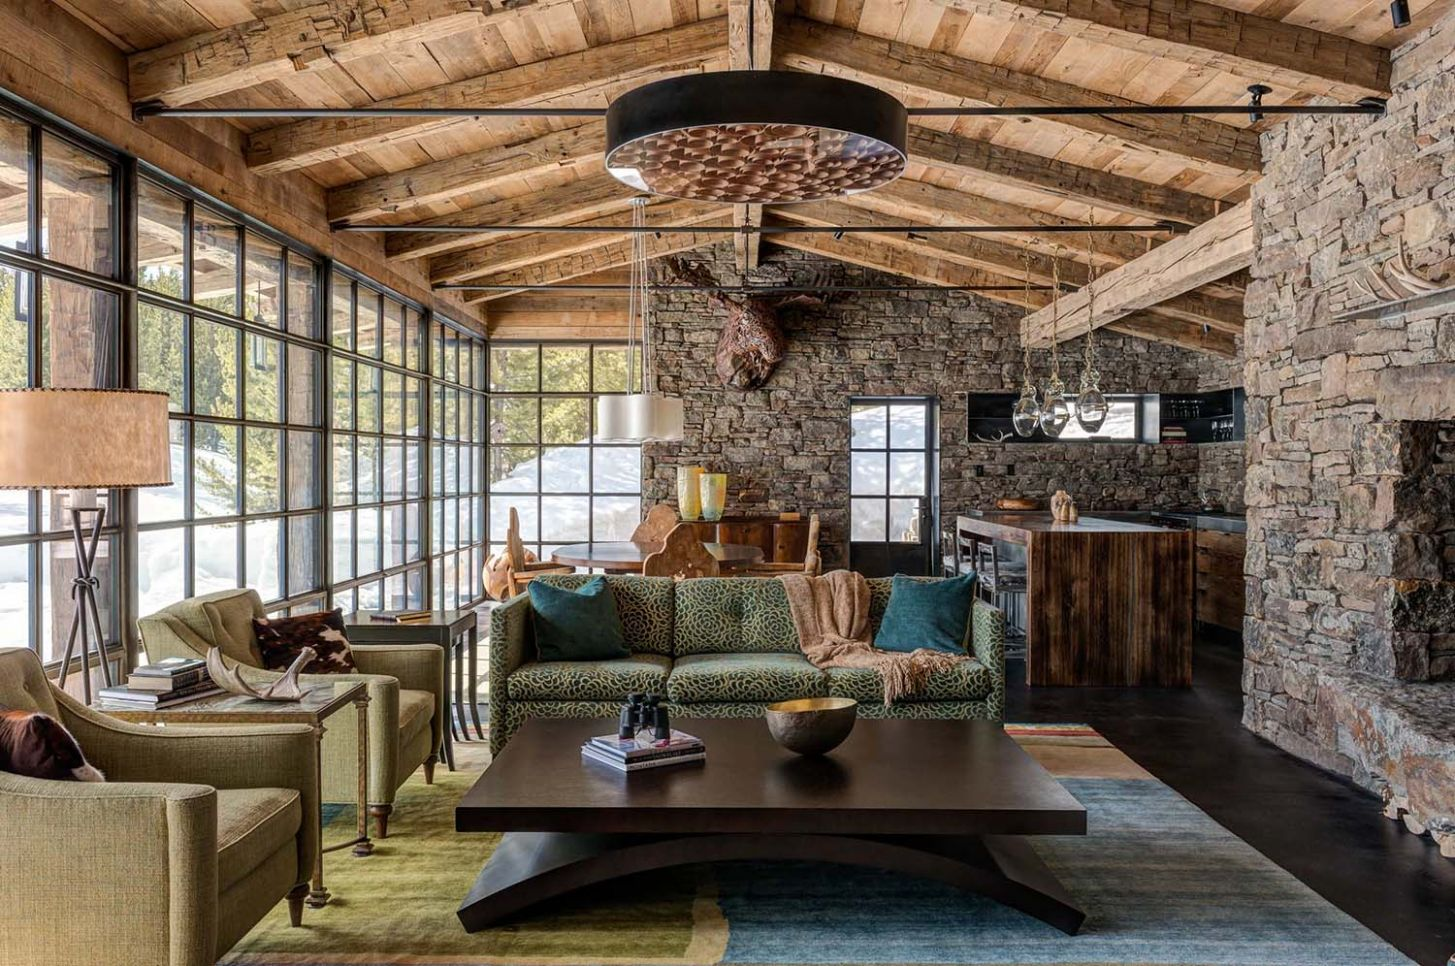 11 Rustic Home Decor Ideas for Your Living Room - home decor rustic